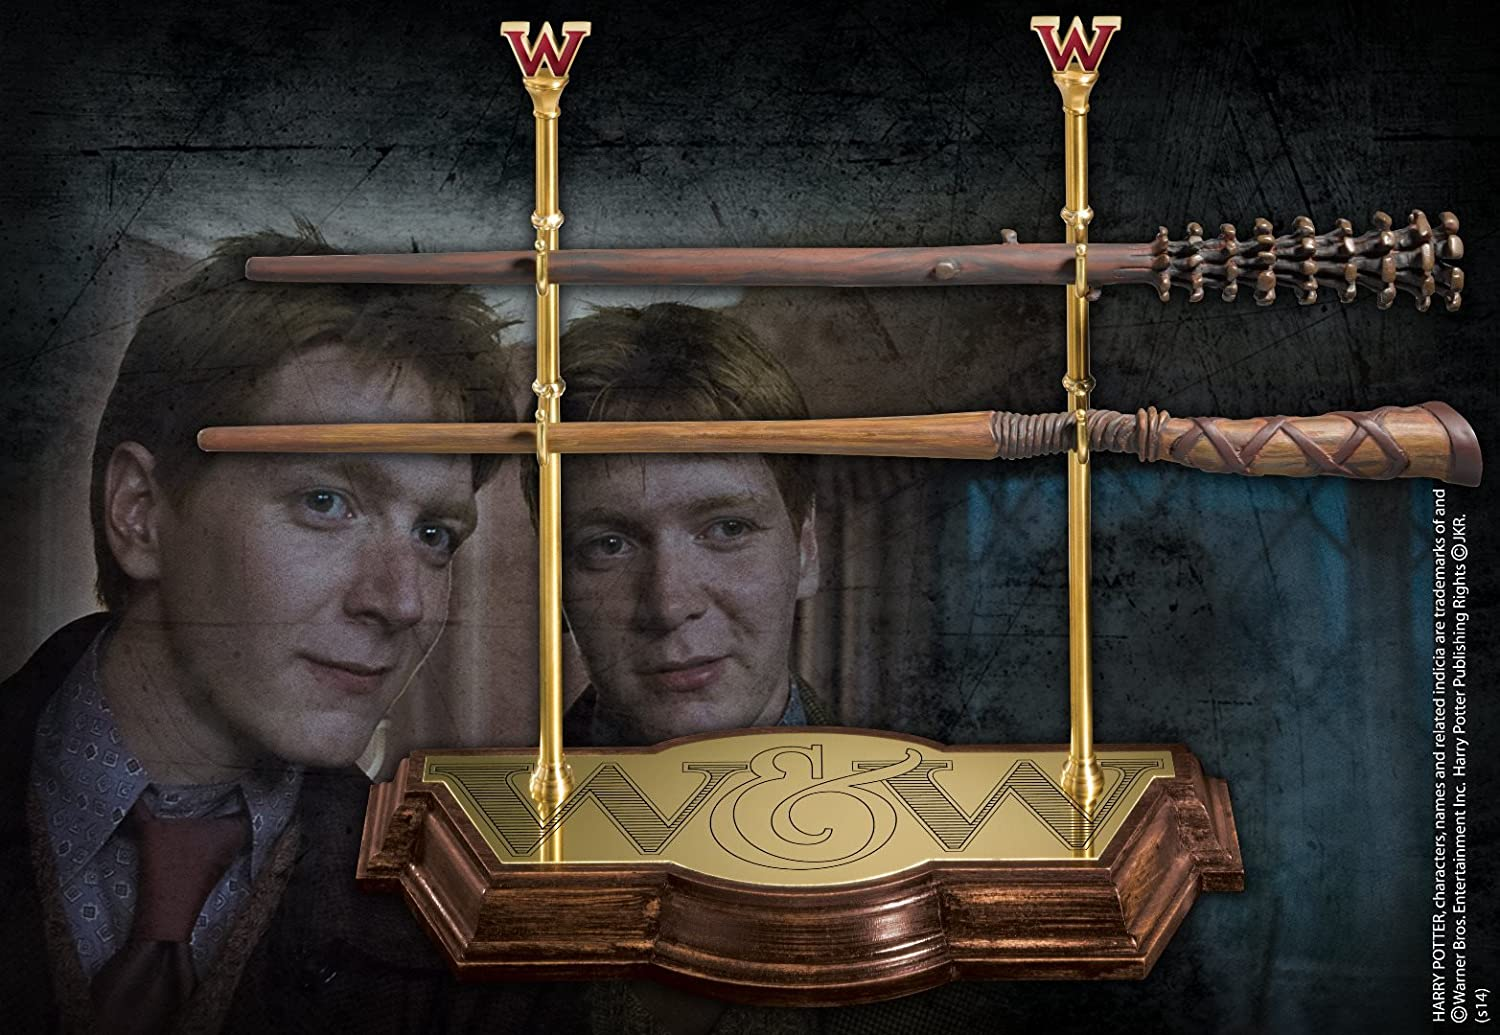 producto de calidad Harry Harry Harry Potter Wand Collection Weasley Twins Noble Replicas  edición limitada